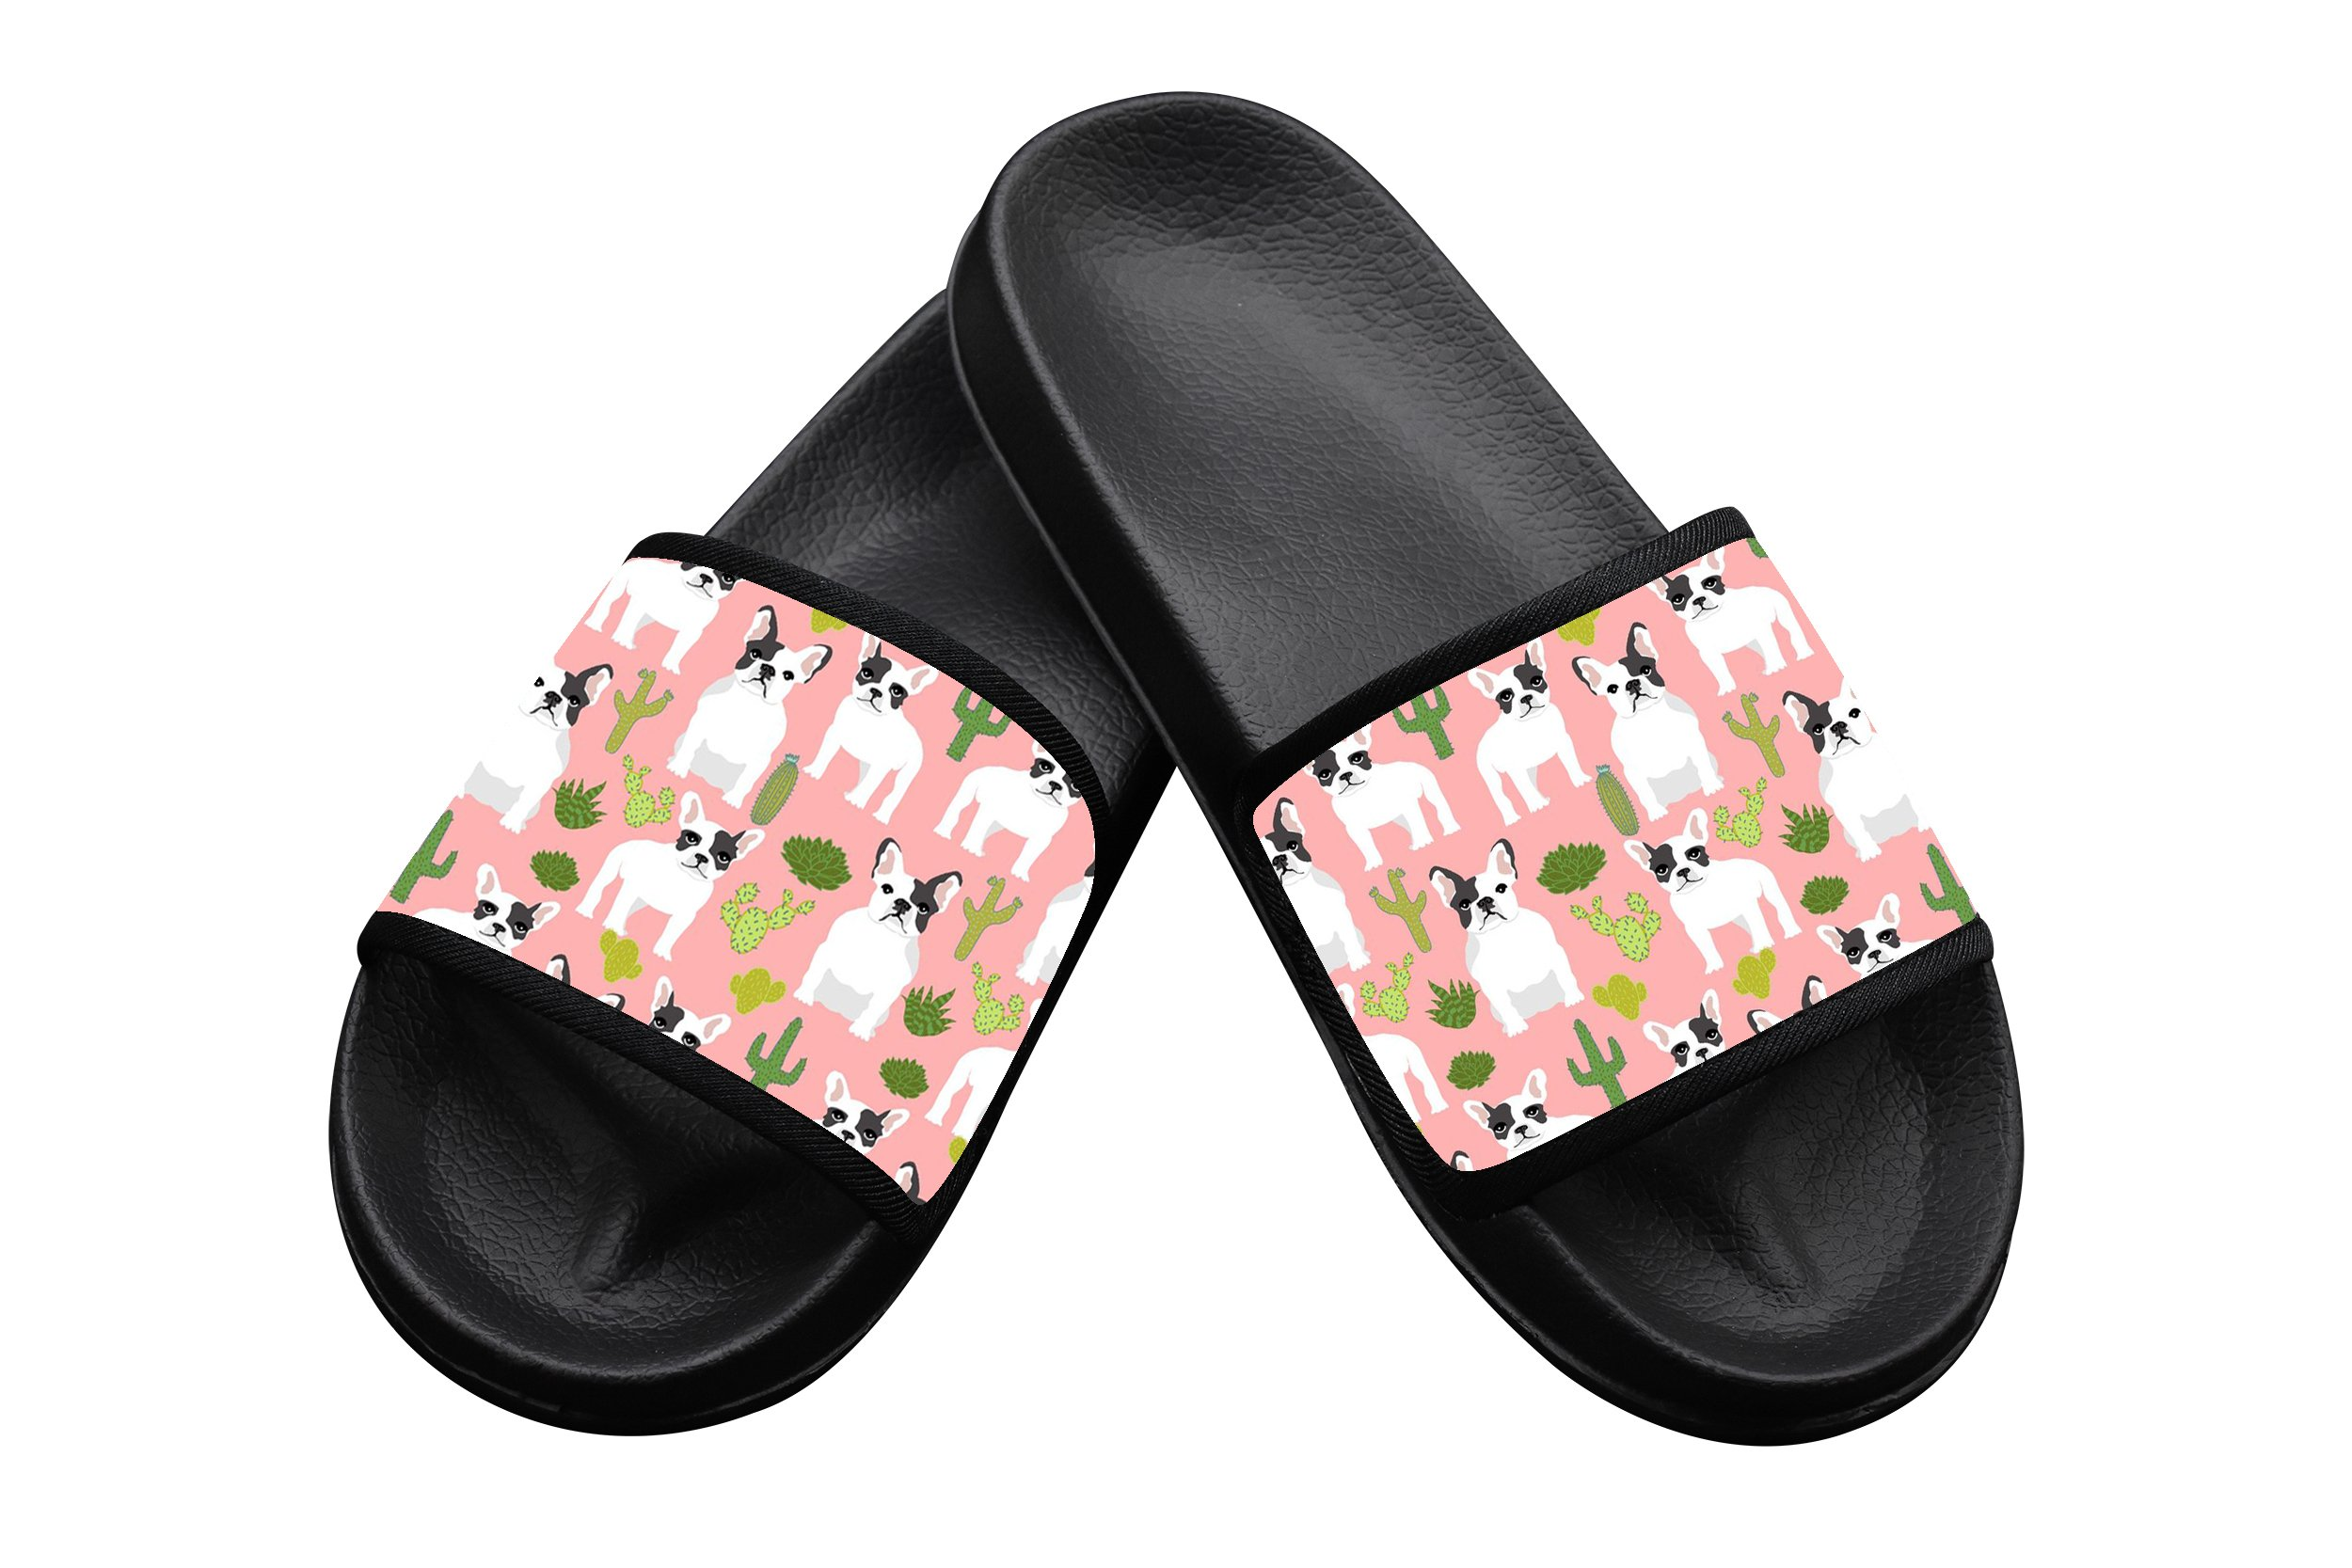 French Bulldog Cactus Summer Slippers Pool Slider Sandals for Kids Indoor & Outdoor 3 B(M) US Big kid